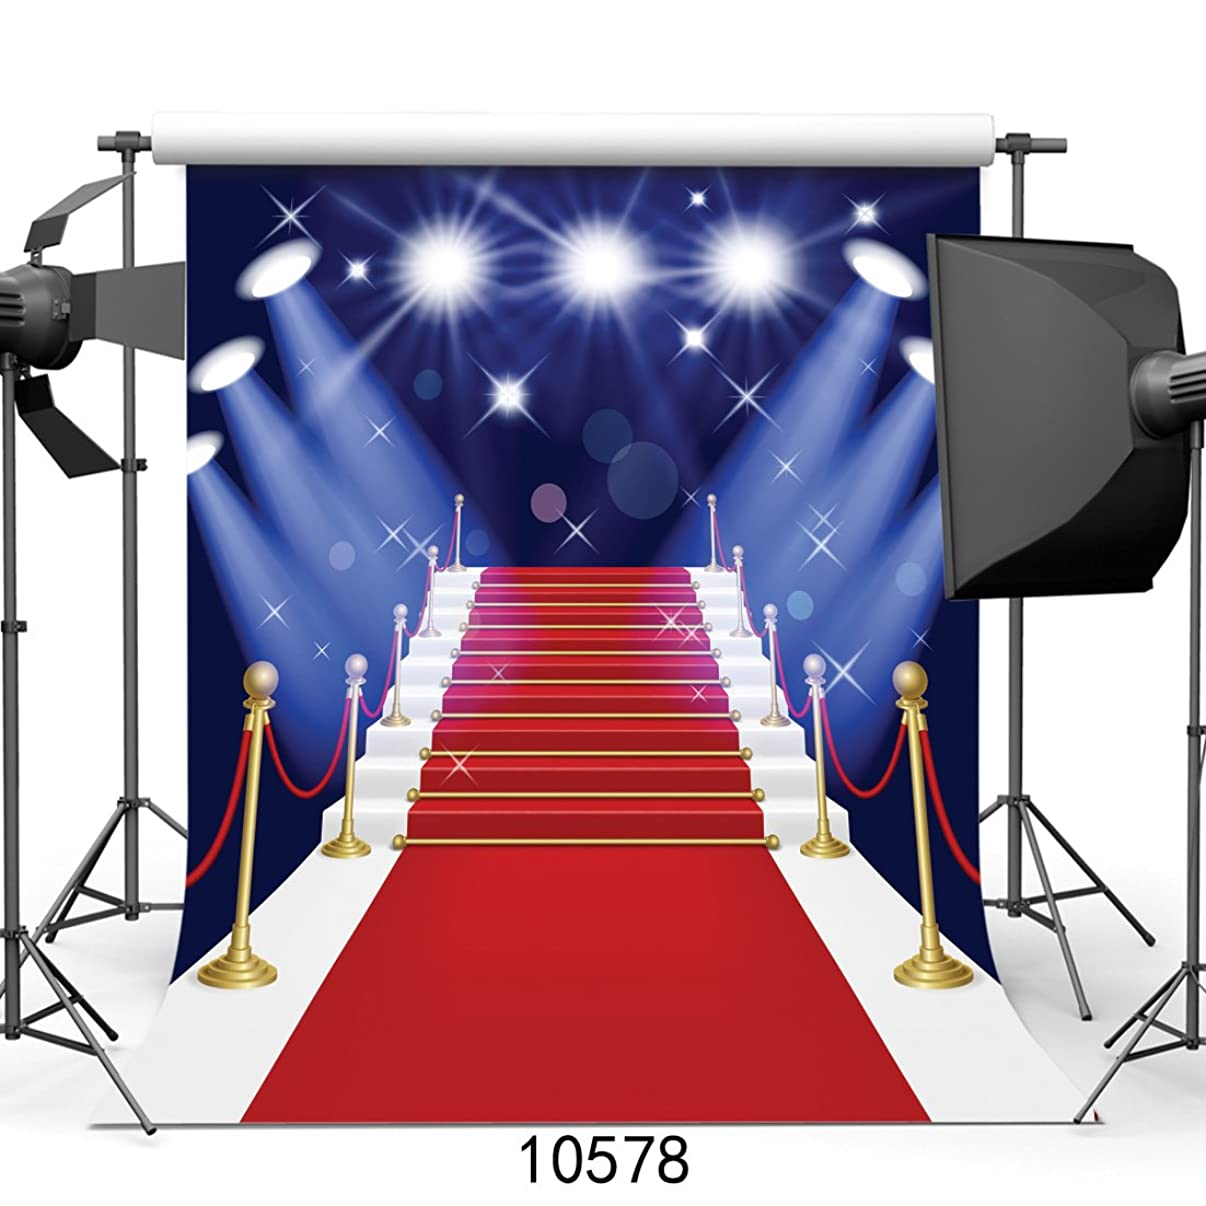 SJOLOON 10X10FT Red Carpet Stage Backdrops for Photography Digital Backgrounds for Wedding Photography Lighting Customized 10578